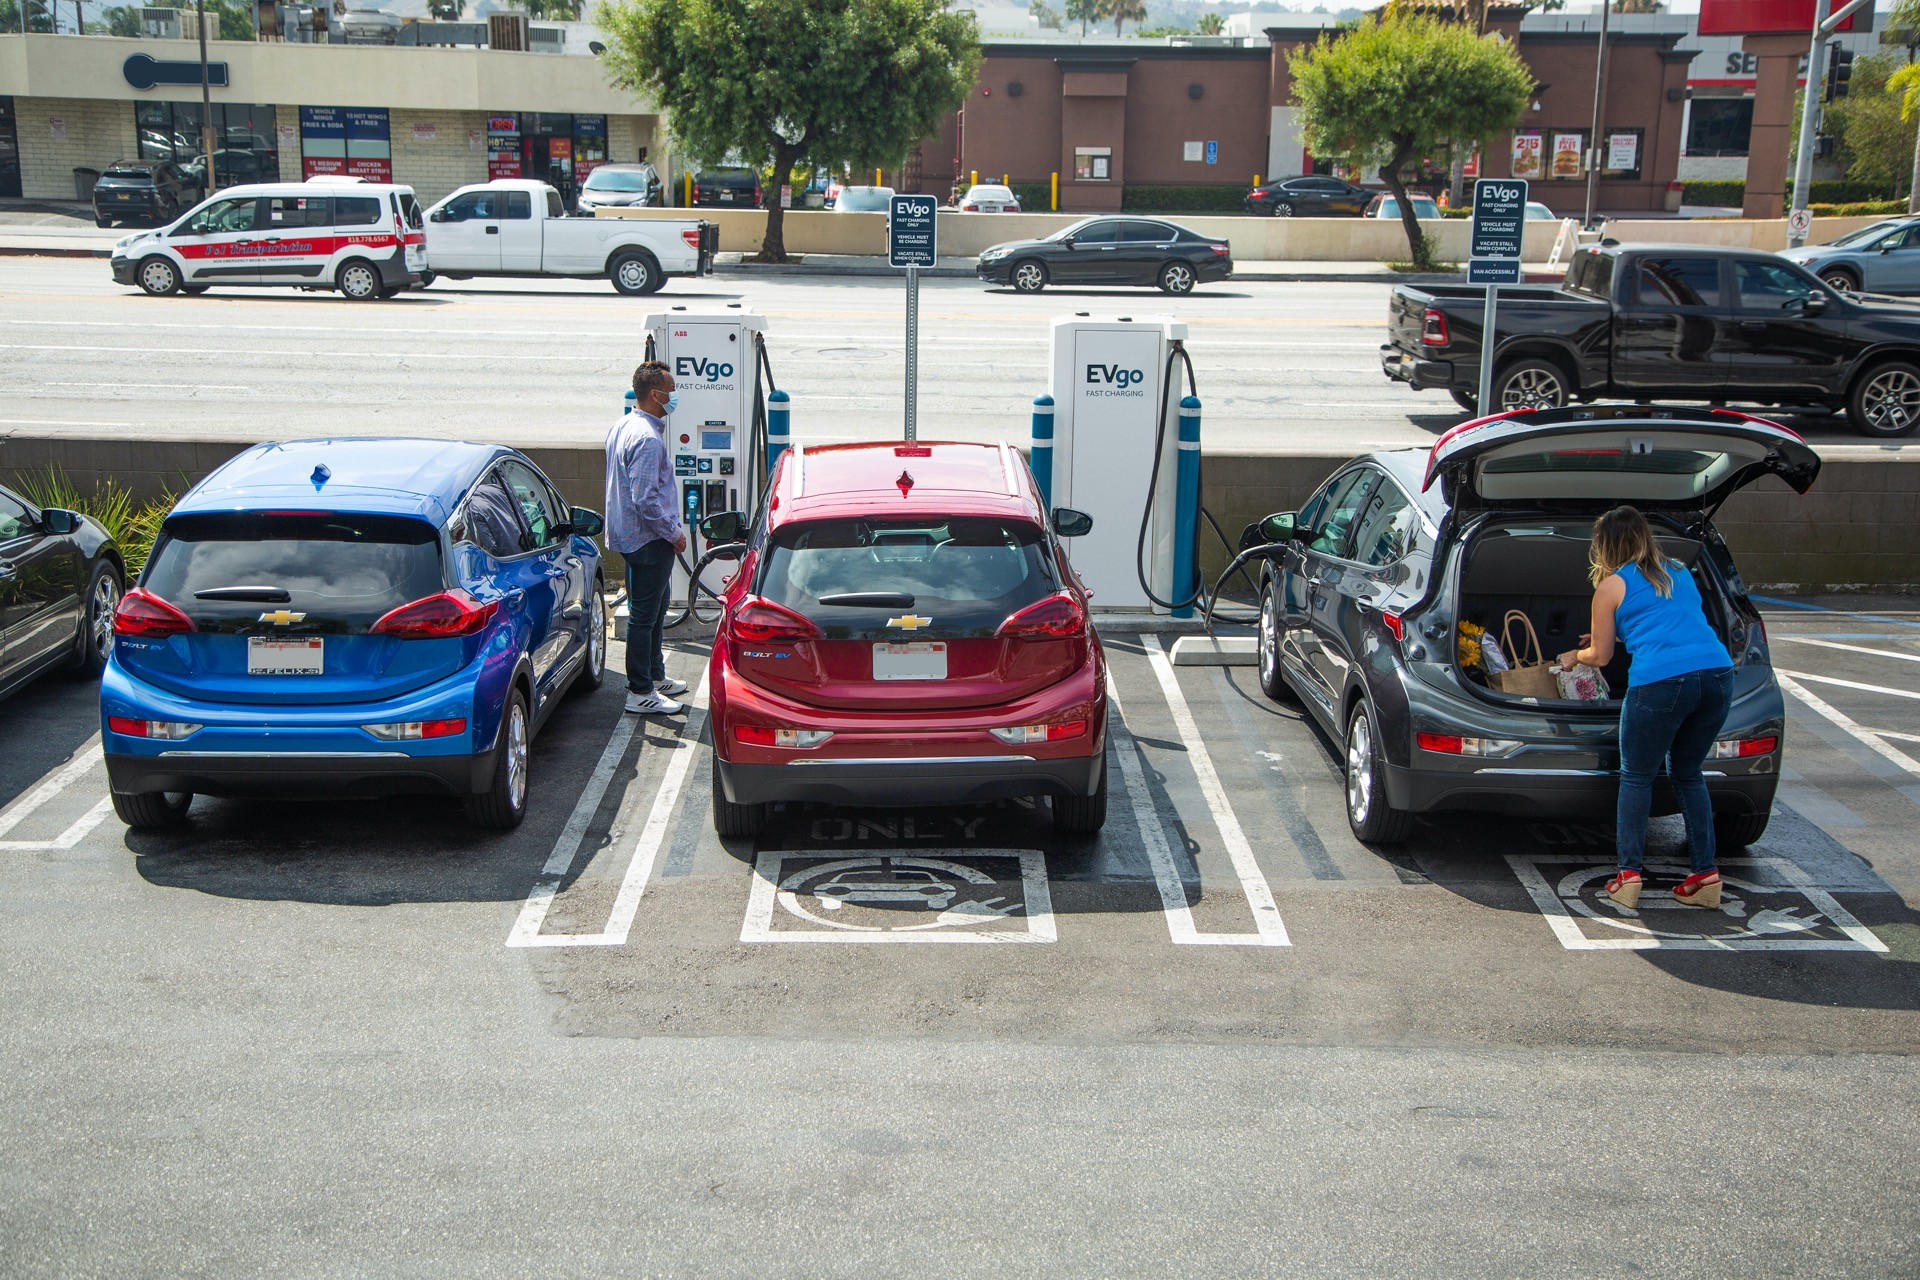 Survey: Auto-industry suppliers support more EVs, oppose Trump rollback